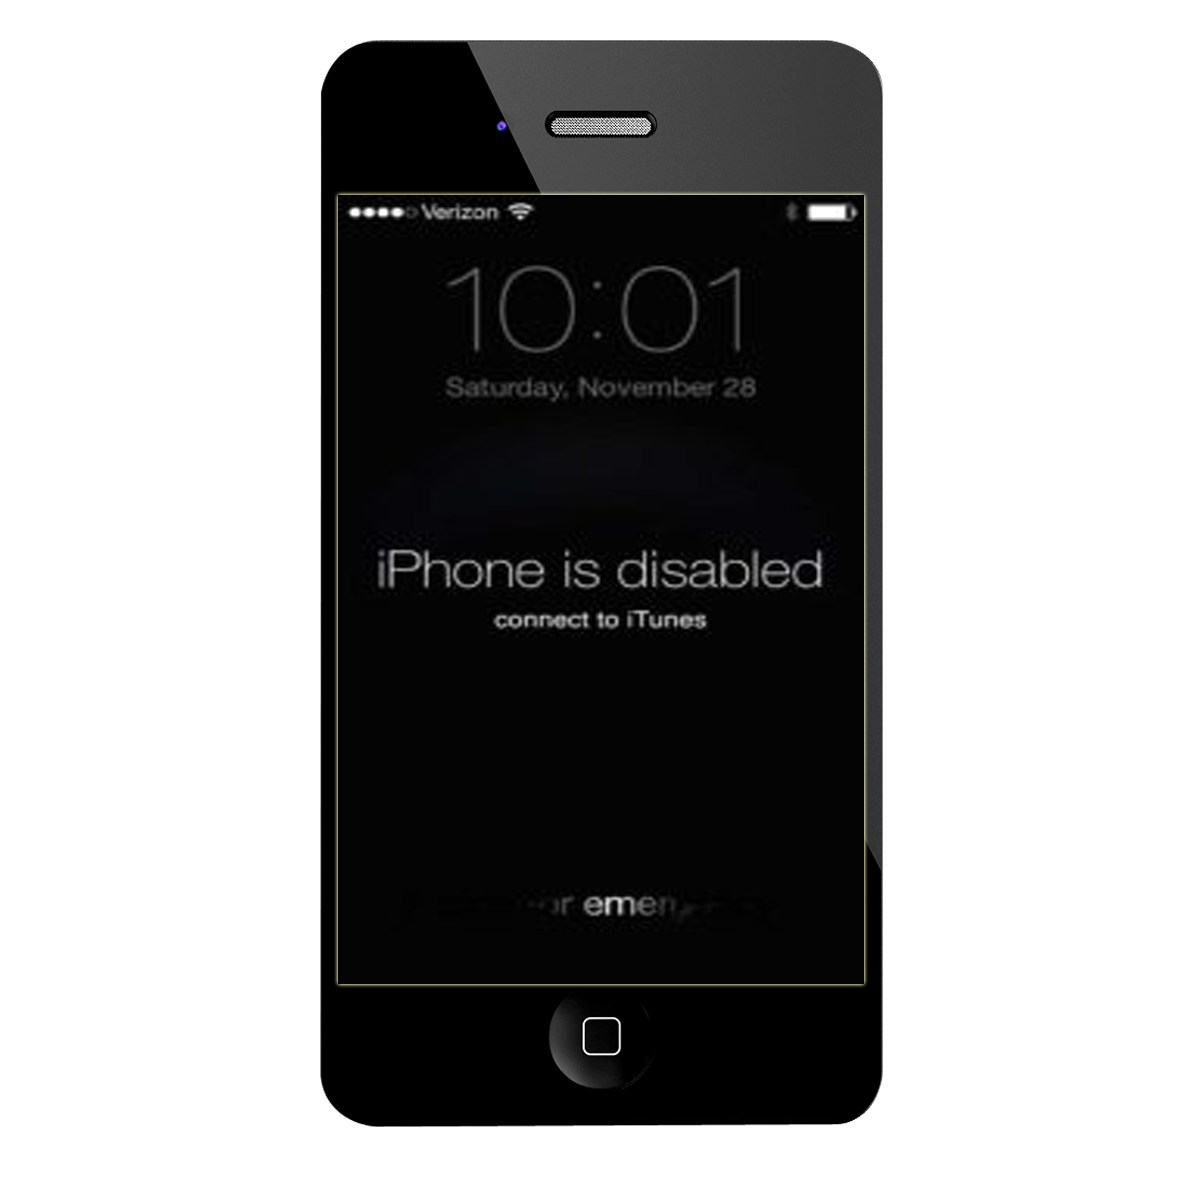 iphone disabled connect to itunes حل مشكلة iphone is disabled connect to itunes لهاتف iphone 17636